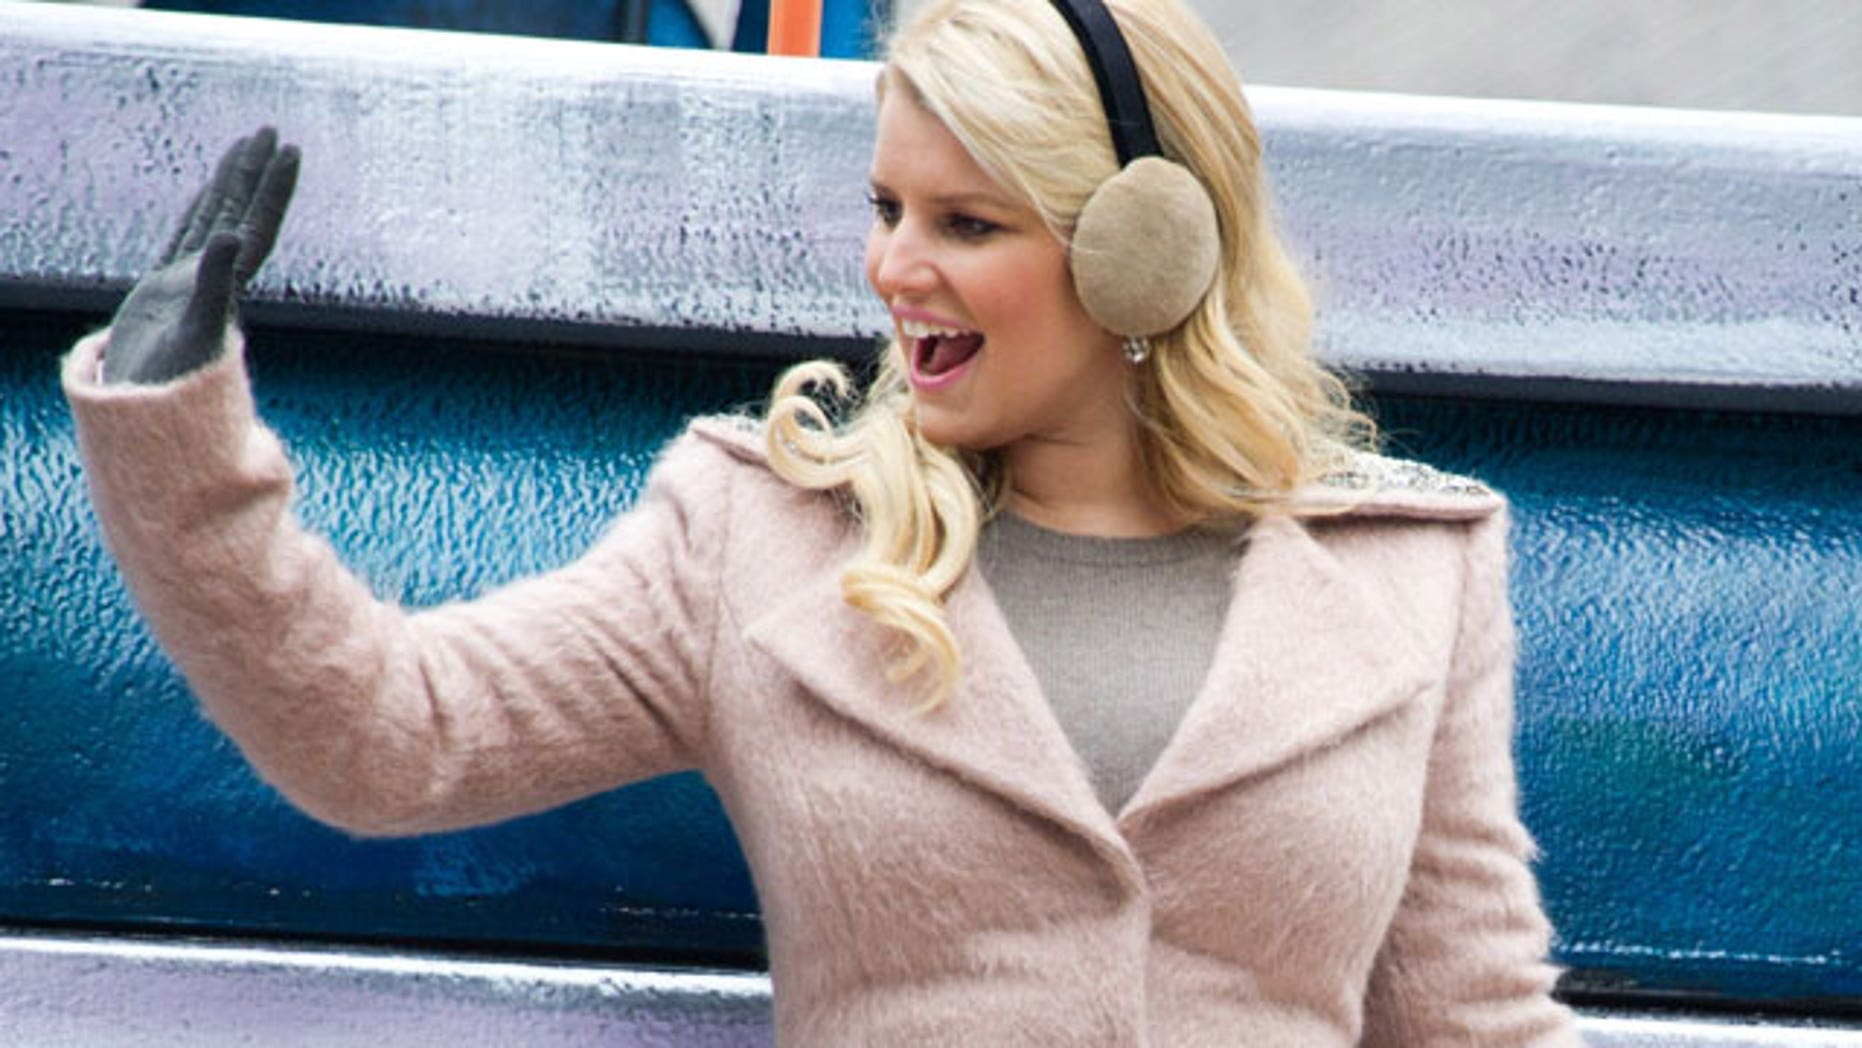 Nov. 25:Jessica Simpson rides a float down 7th Avenue in the Macy's Thanksgiving Day Parade in New York.